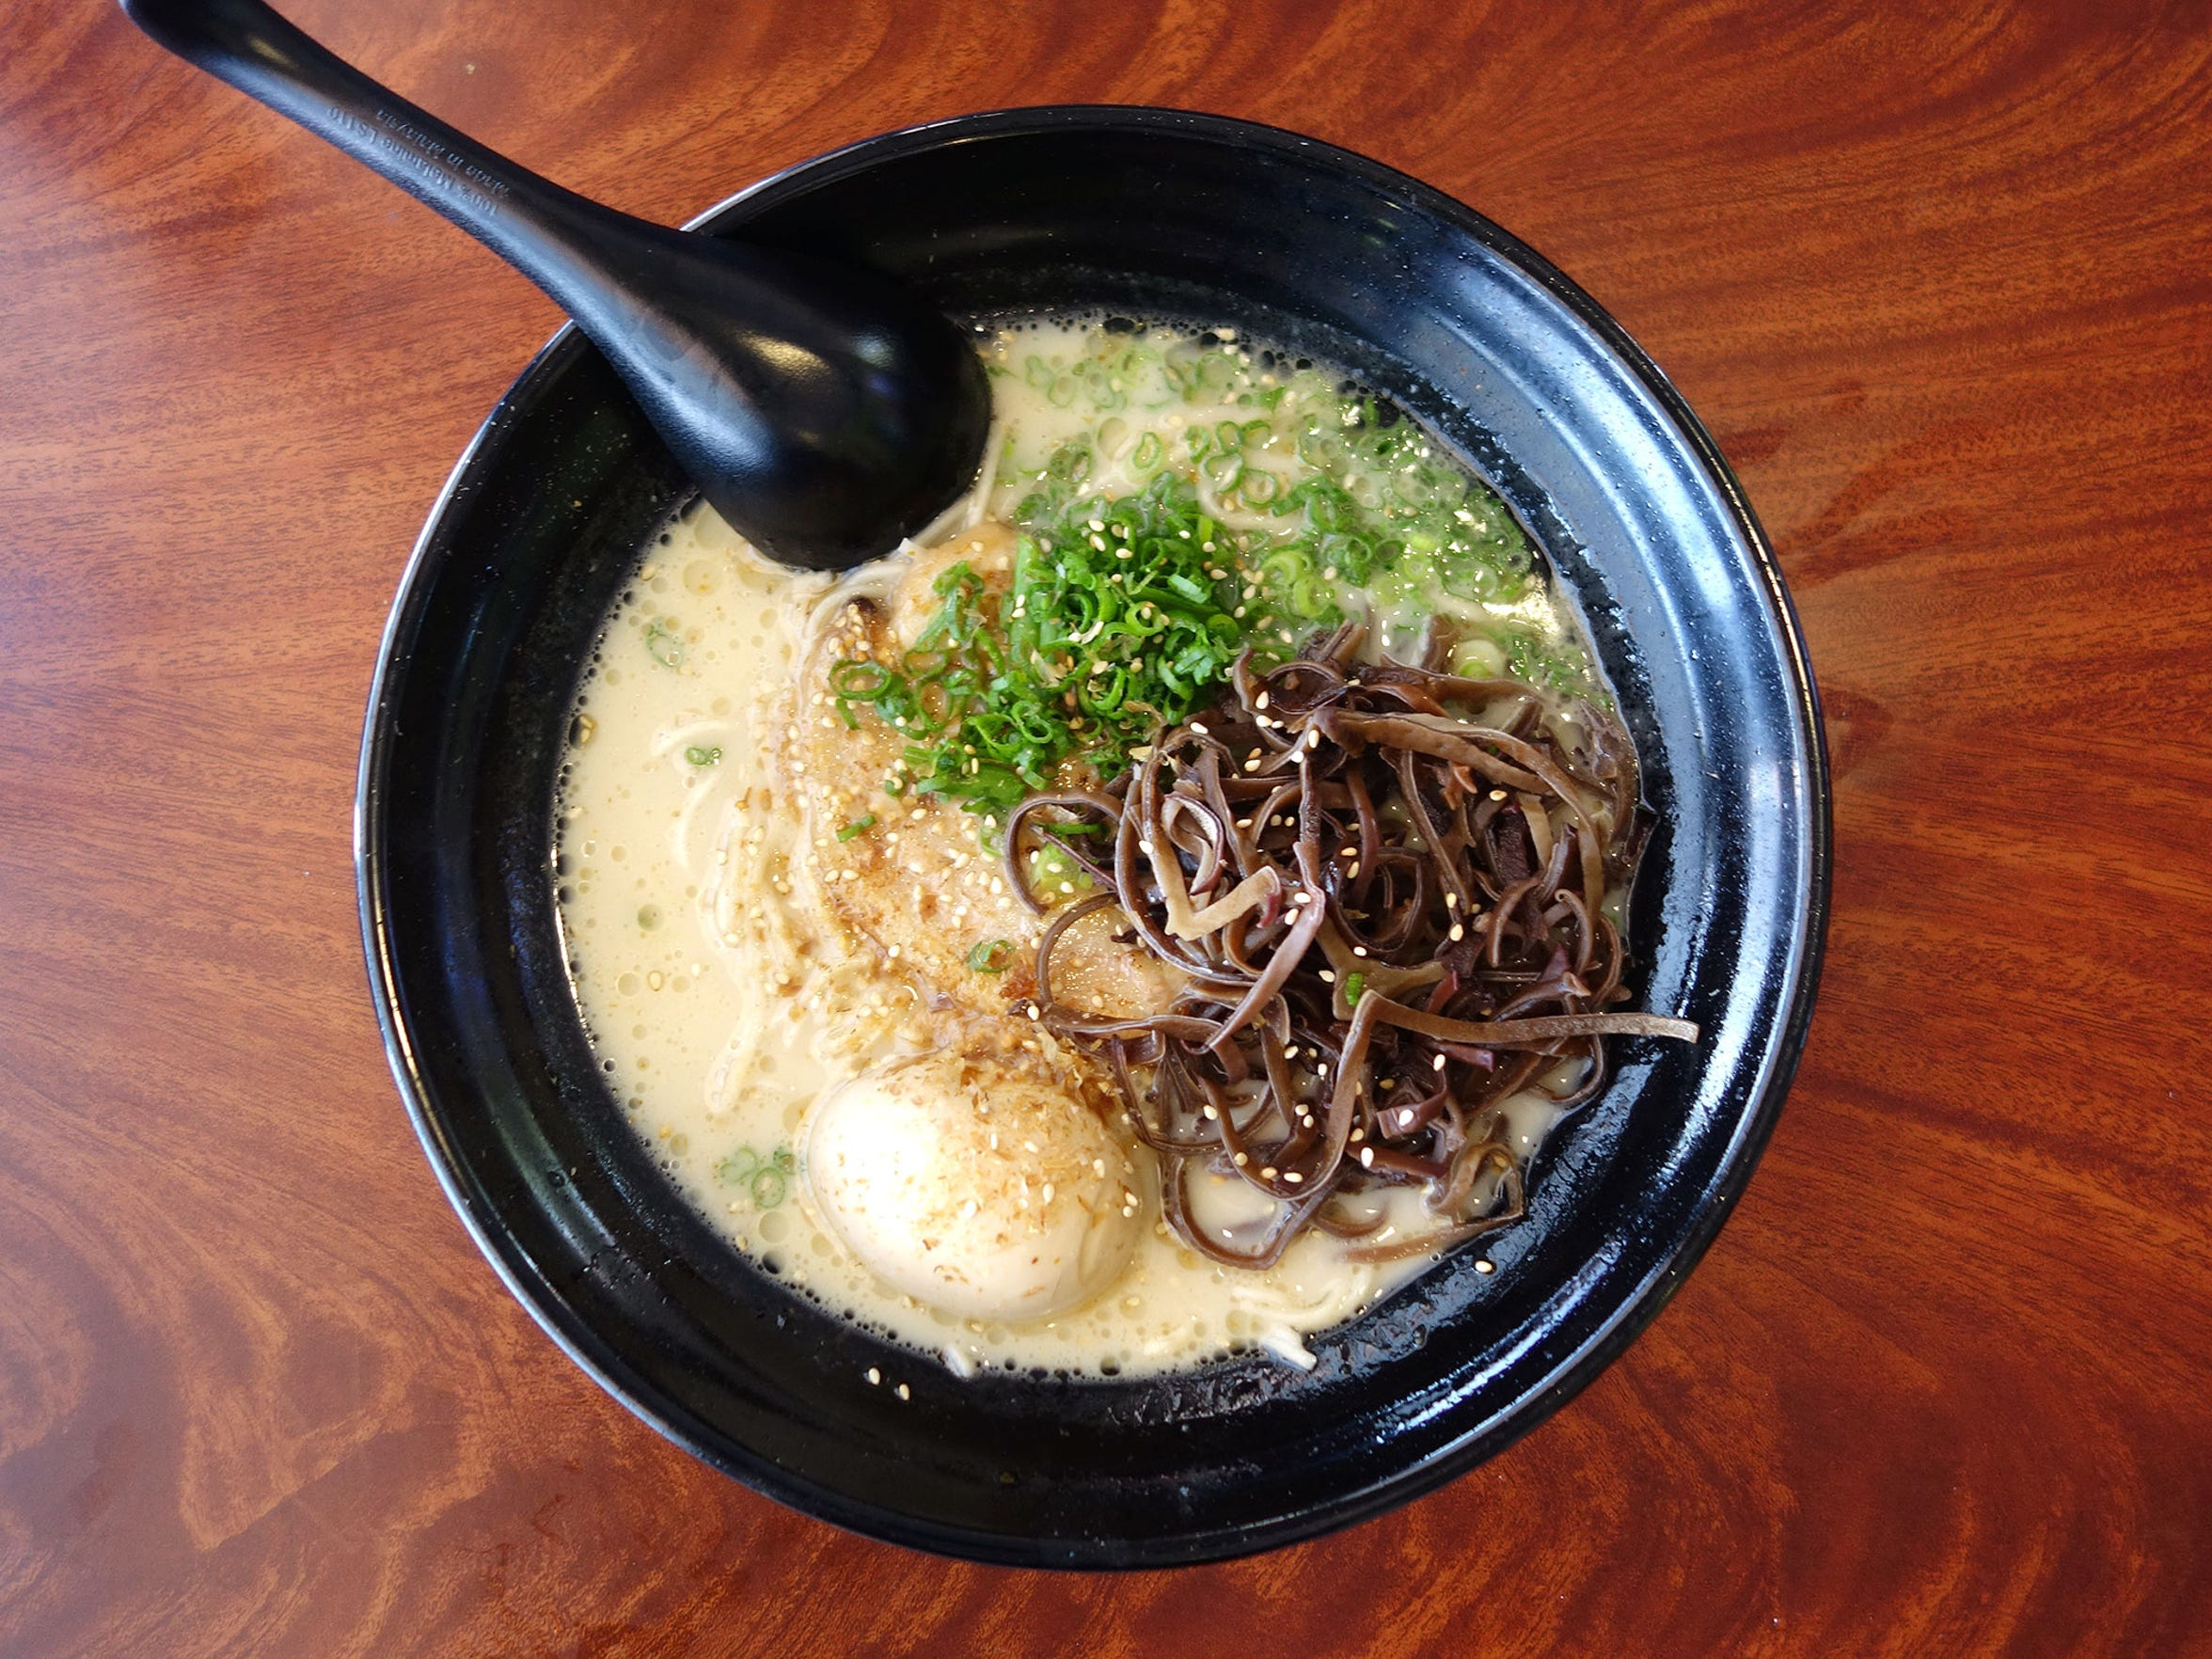 Nishikawa's broth has a perfectly clean scent, and is creamy and rich without going over the top.